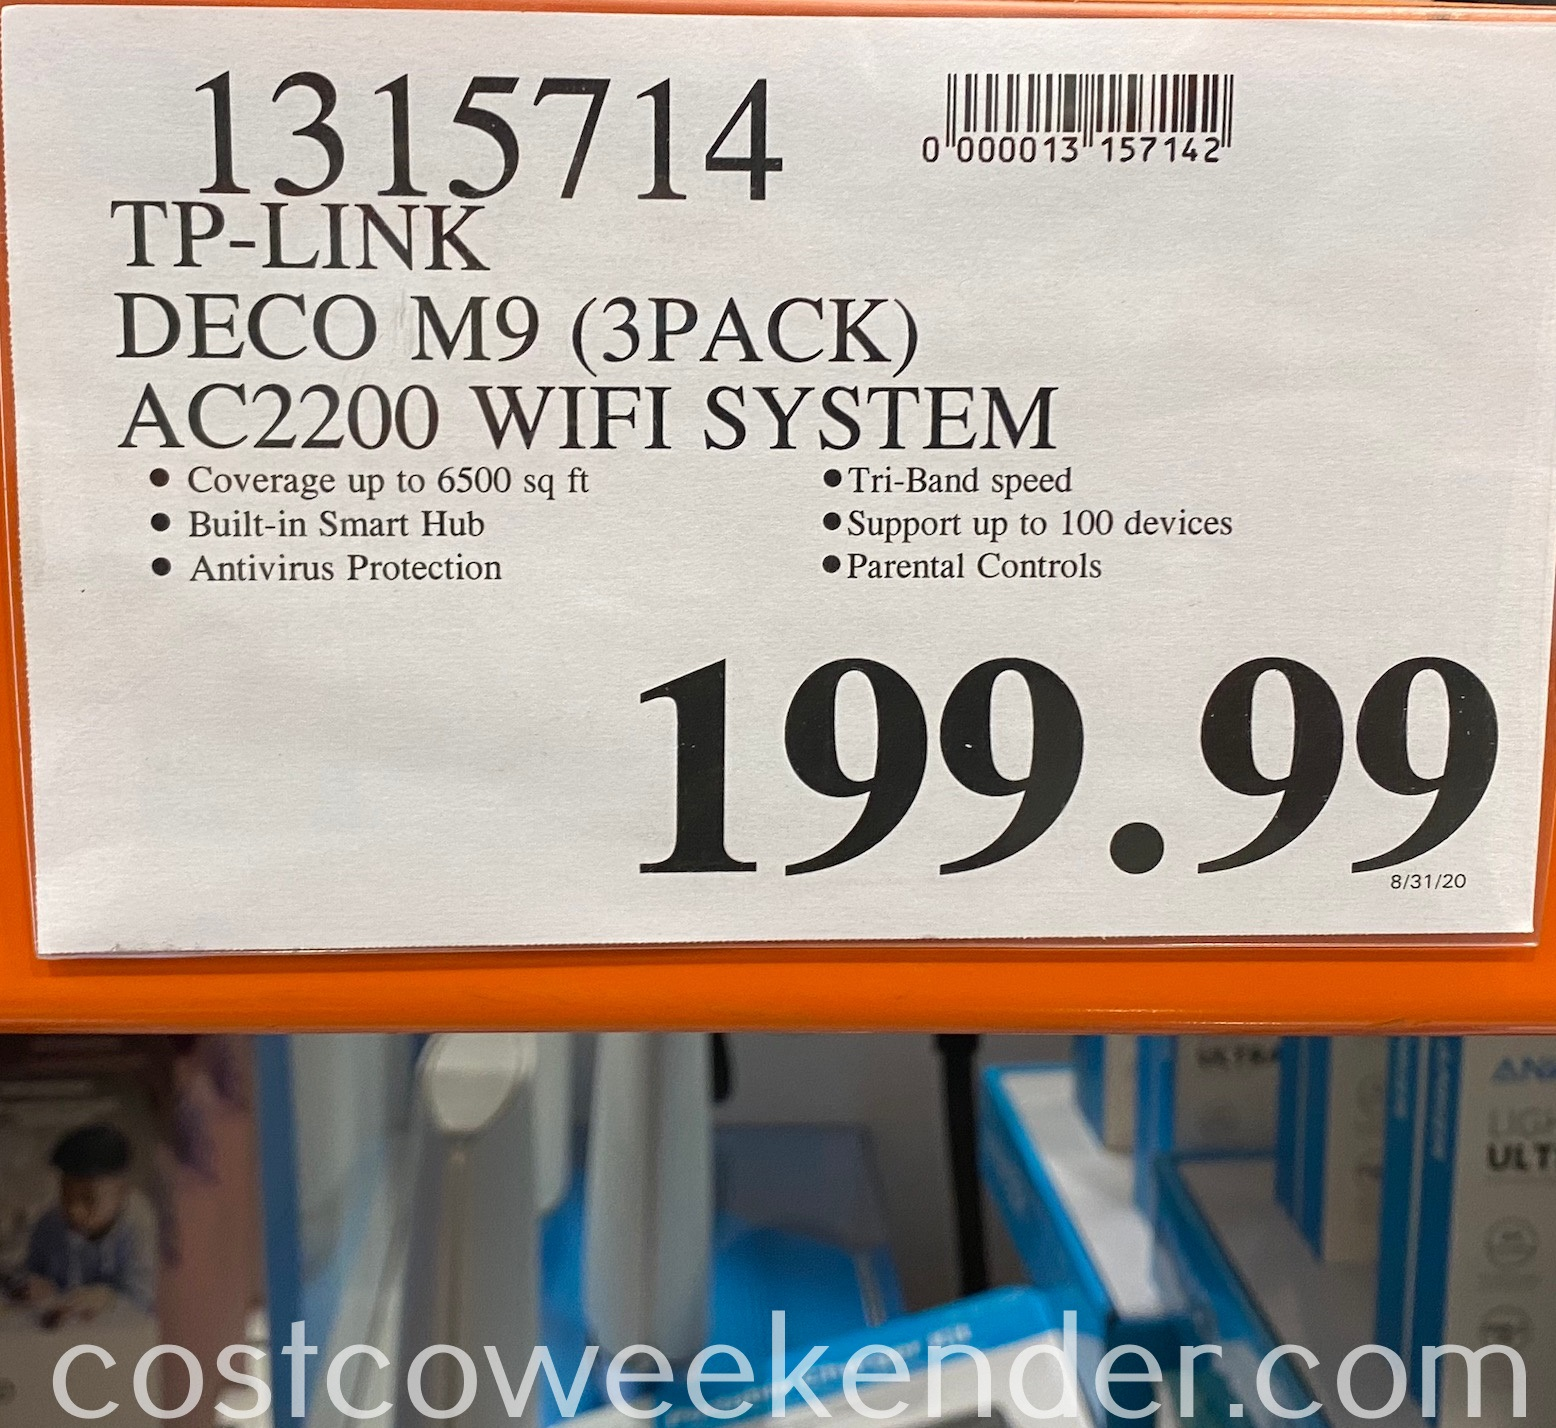 Deal for the TP-Link Deco M9 Plus AC2200 Wi-Fi System at Costco